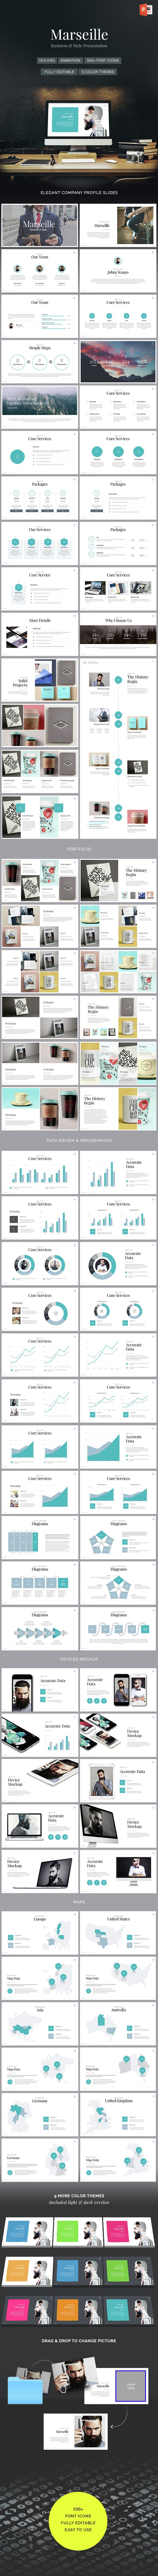 Marseille - Elegant Powerpoint Template. Download here: http://graphicriver.net/item/marseille-elegant-powerpoint-template/15153602?ref=ksioks